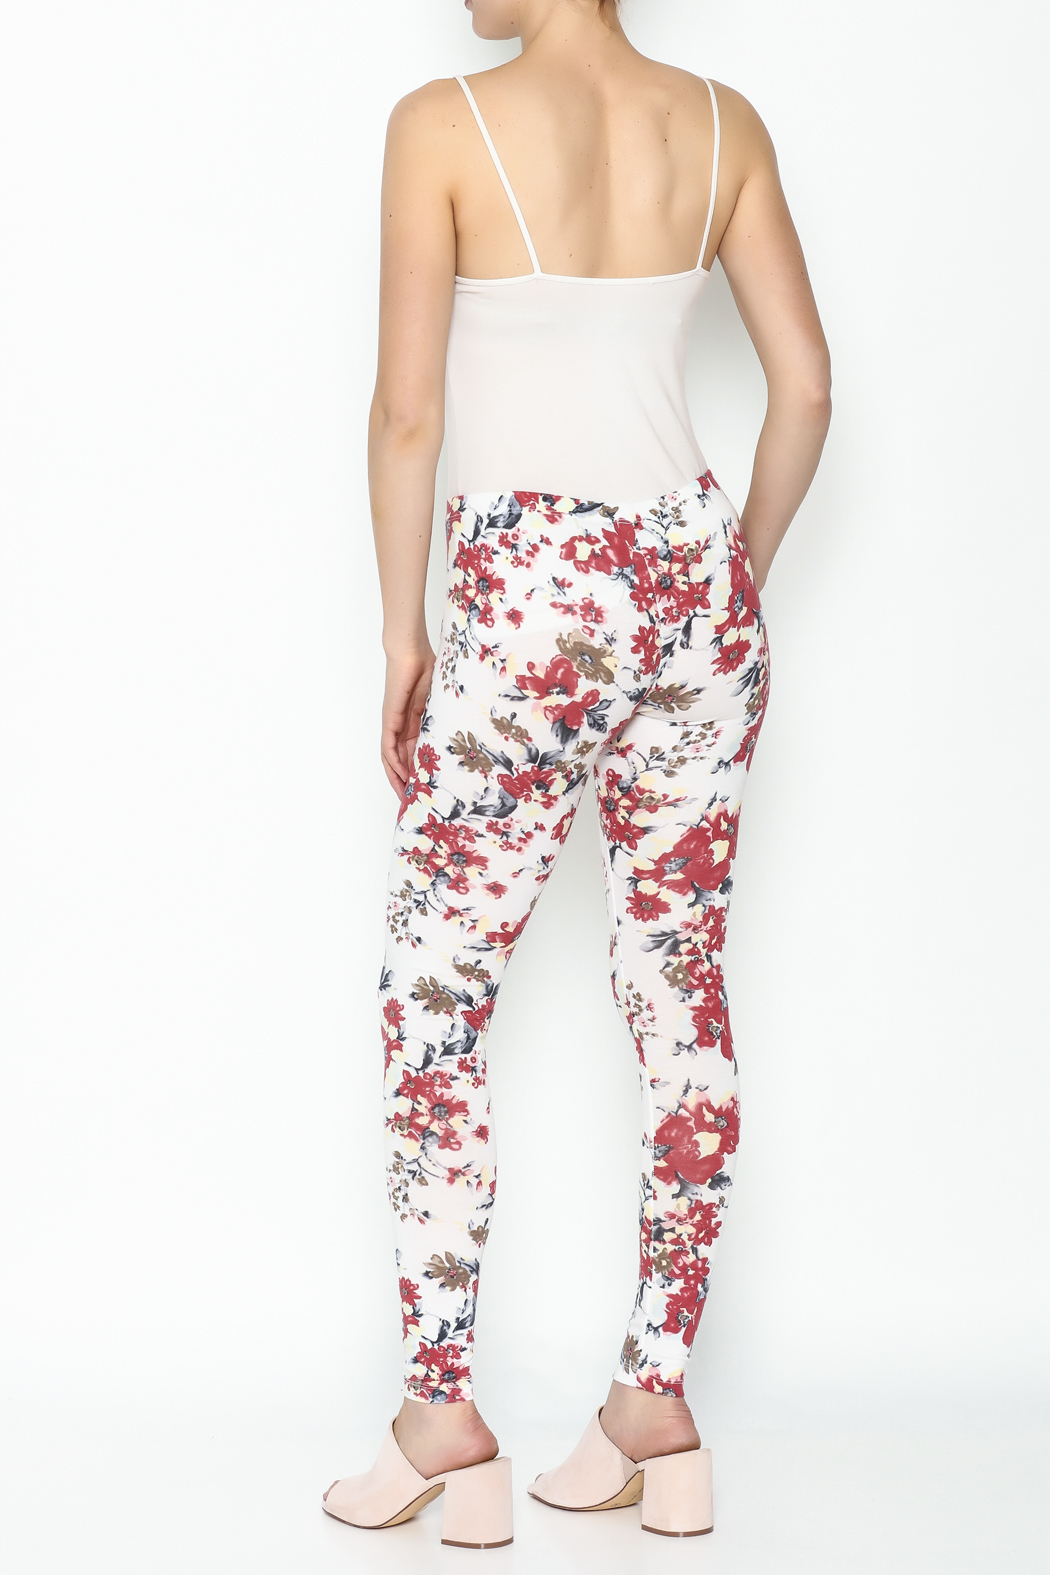 Daisy's Fashions Flower Print Leggings - Back Cropped Image